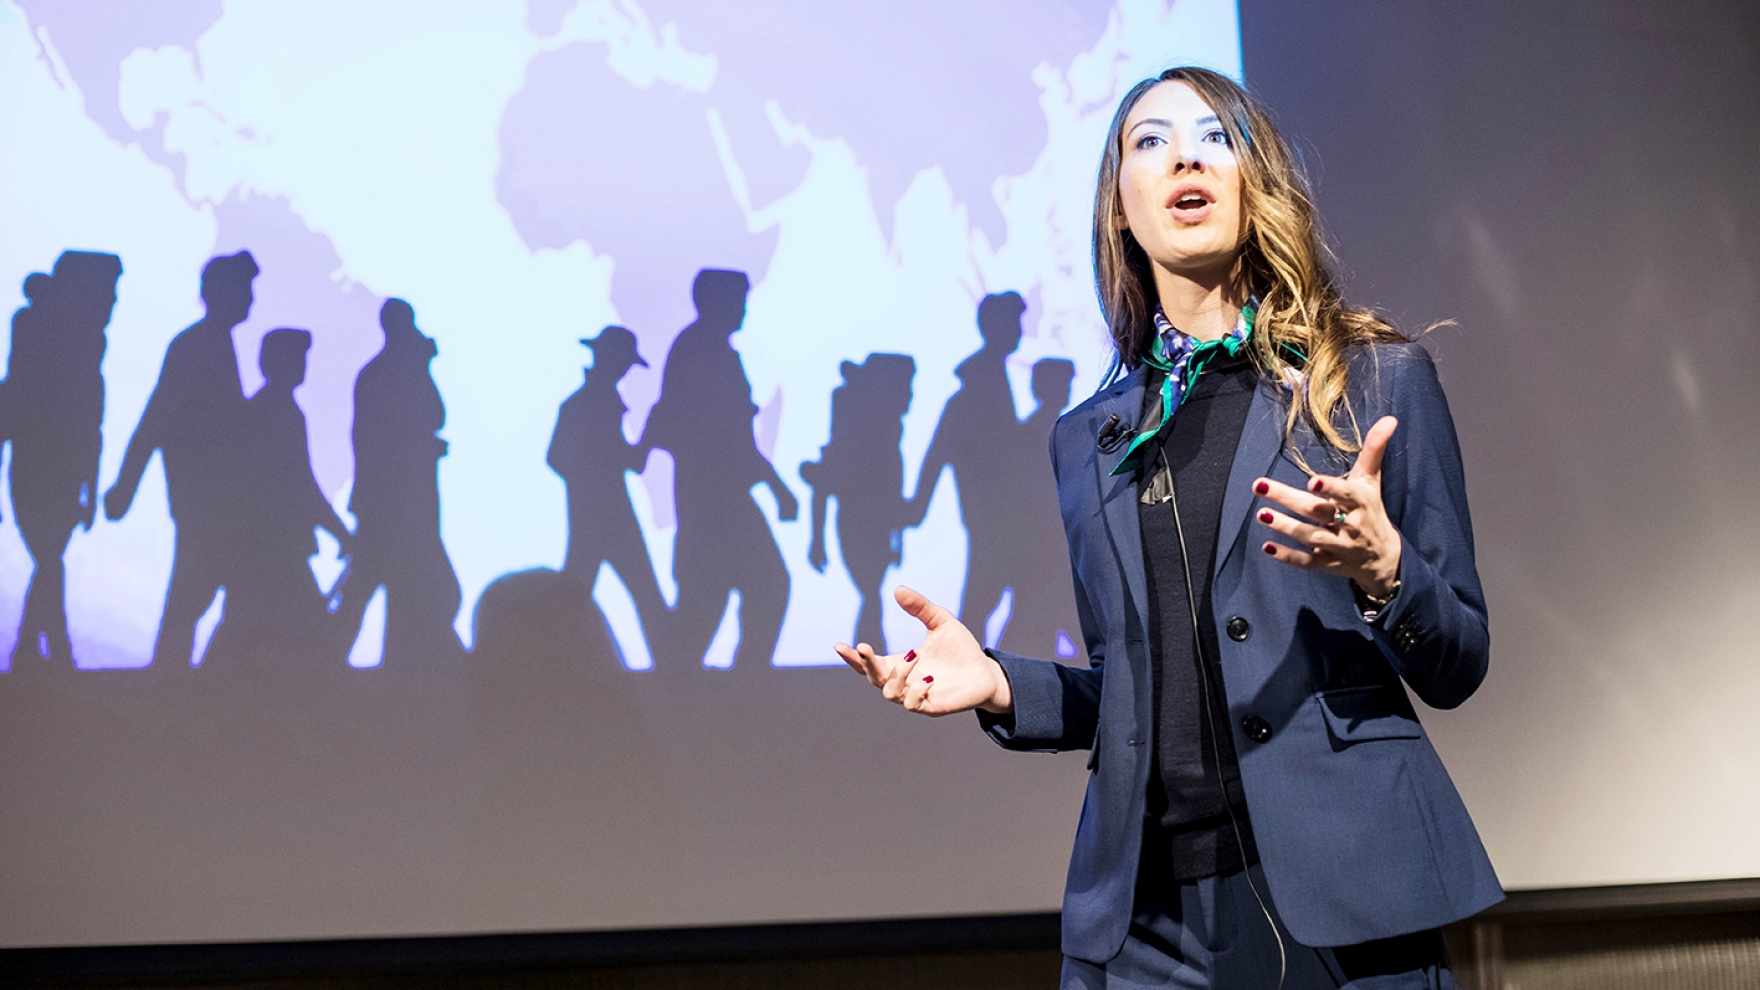 Meredith Van Natta delivers her talk during the 2018 Grad Slam competition